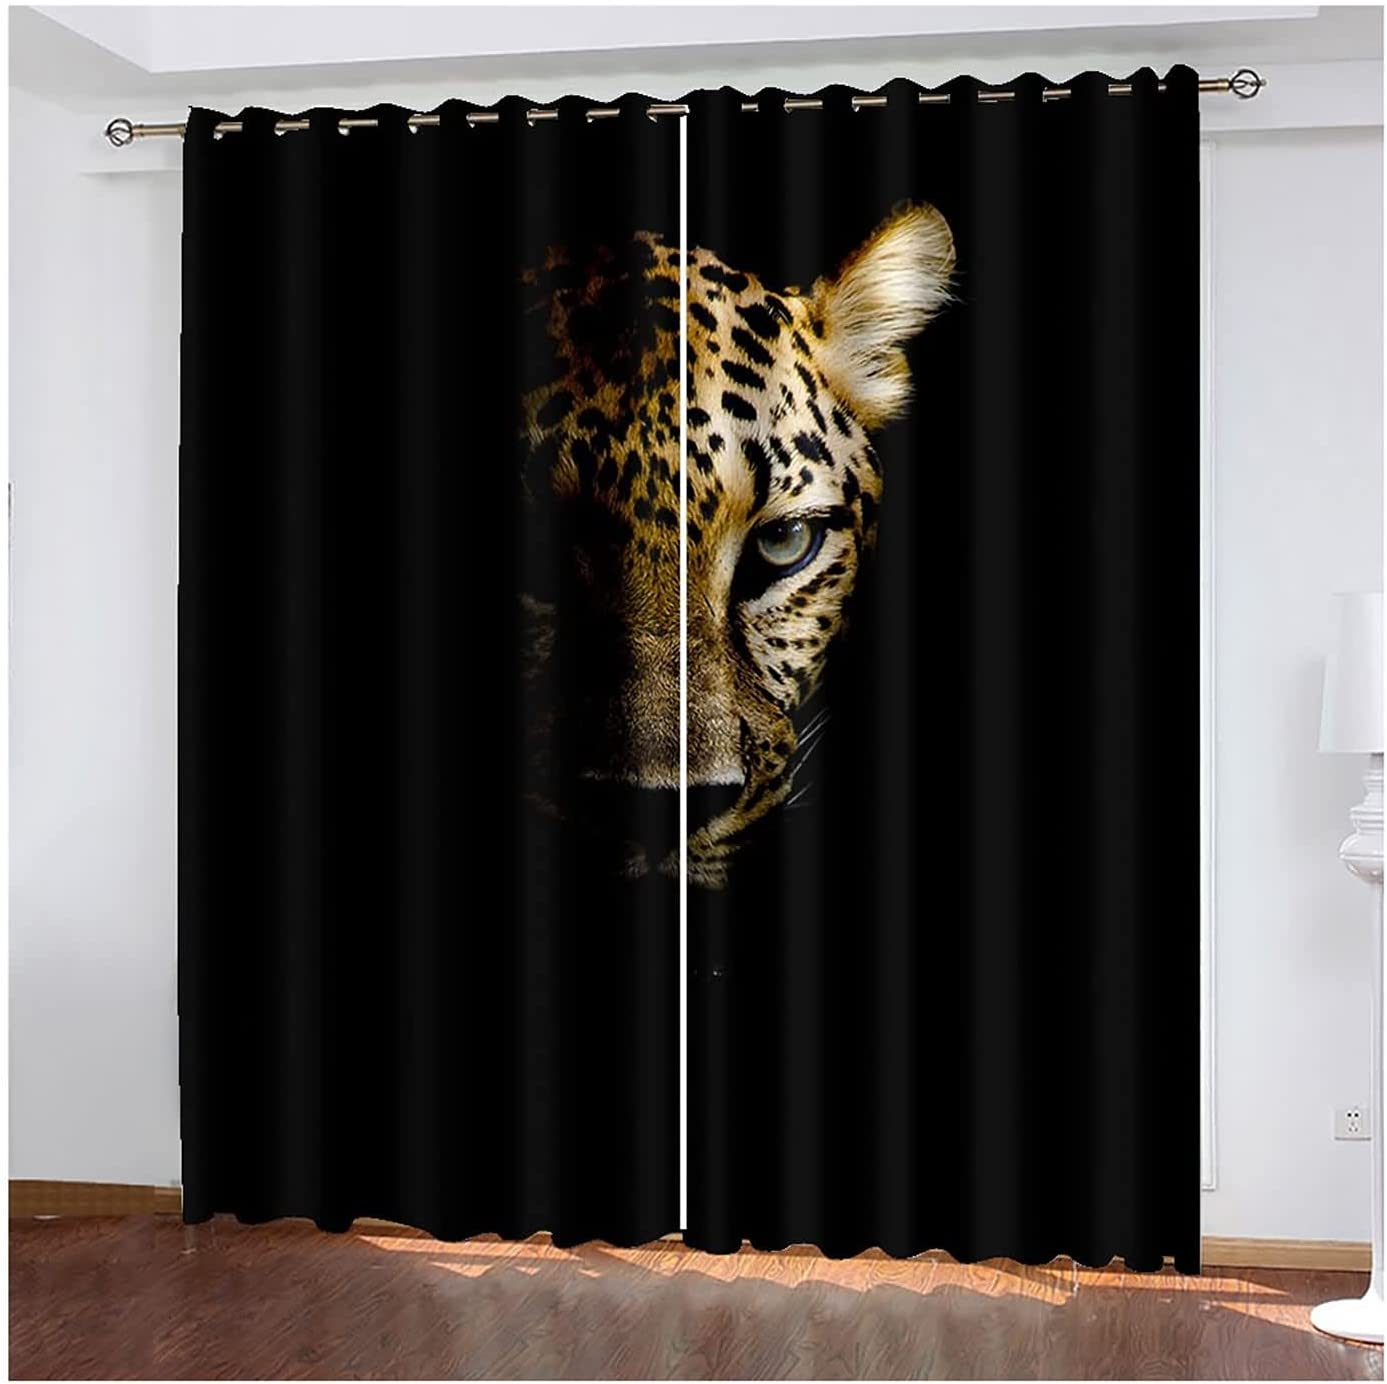 Bedroom Curtains Rare 2 Panel Sets Blackout Drapes L for Ranking TOP15 Living Room